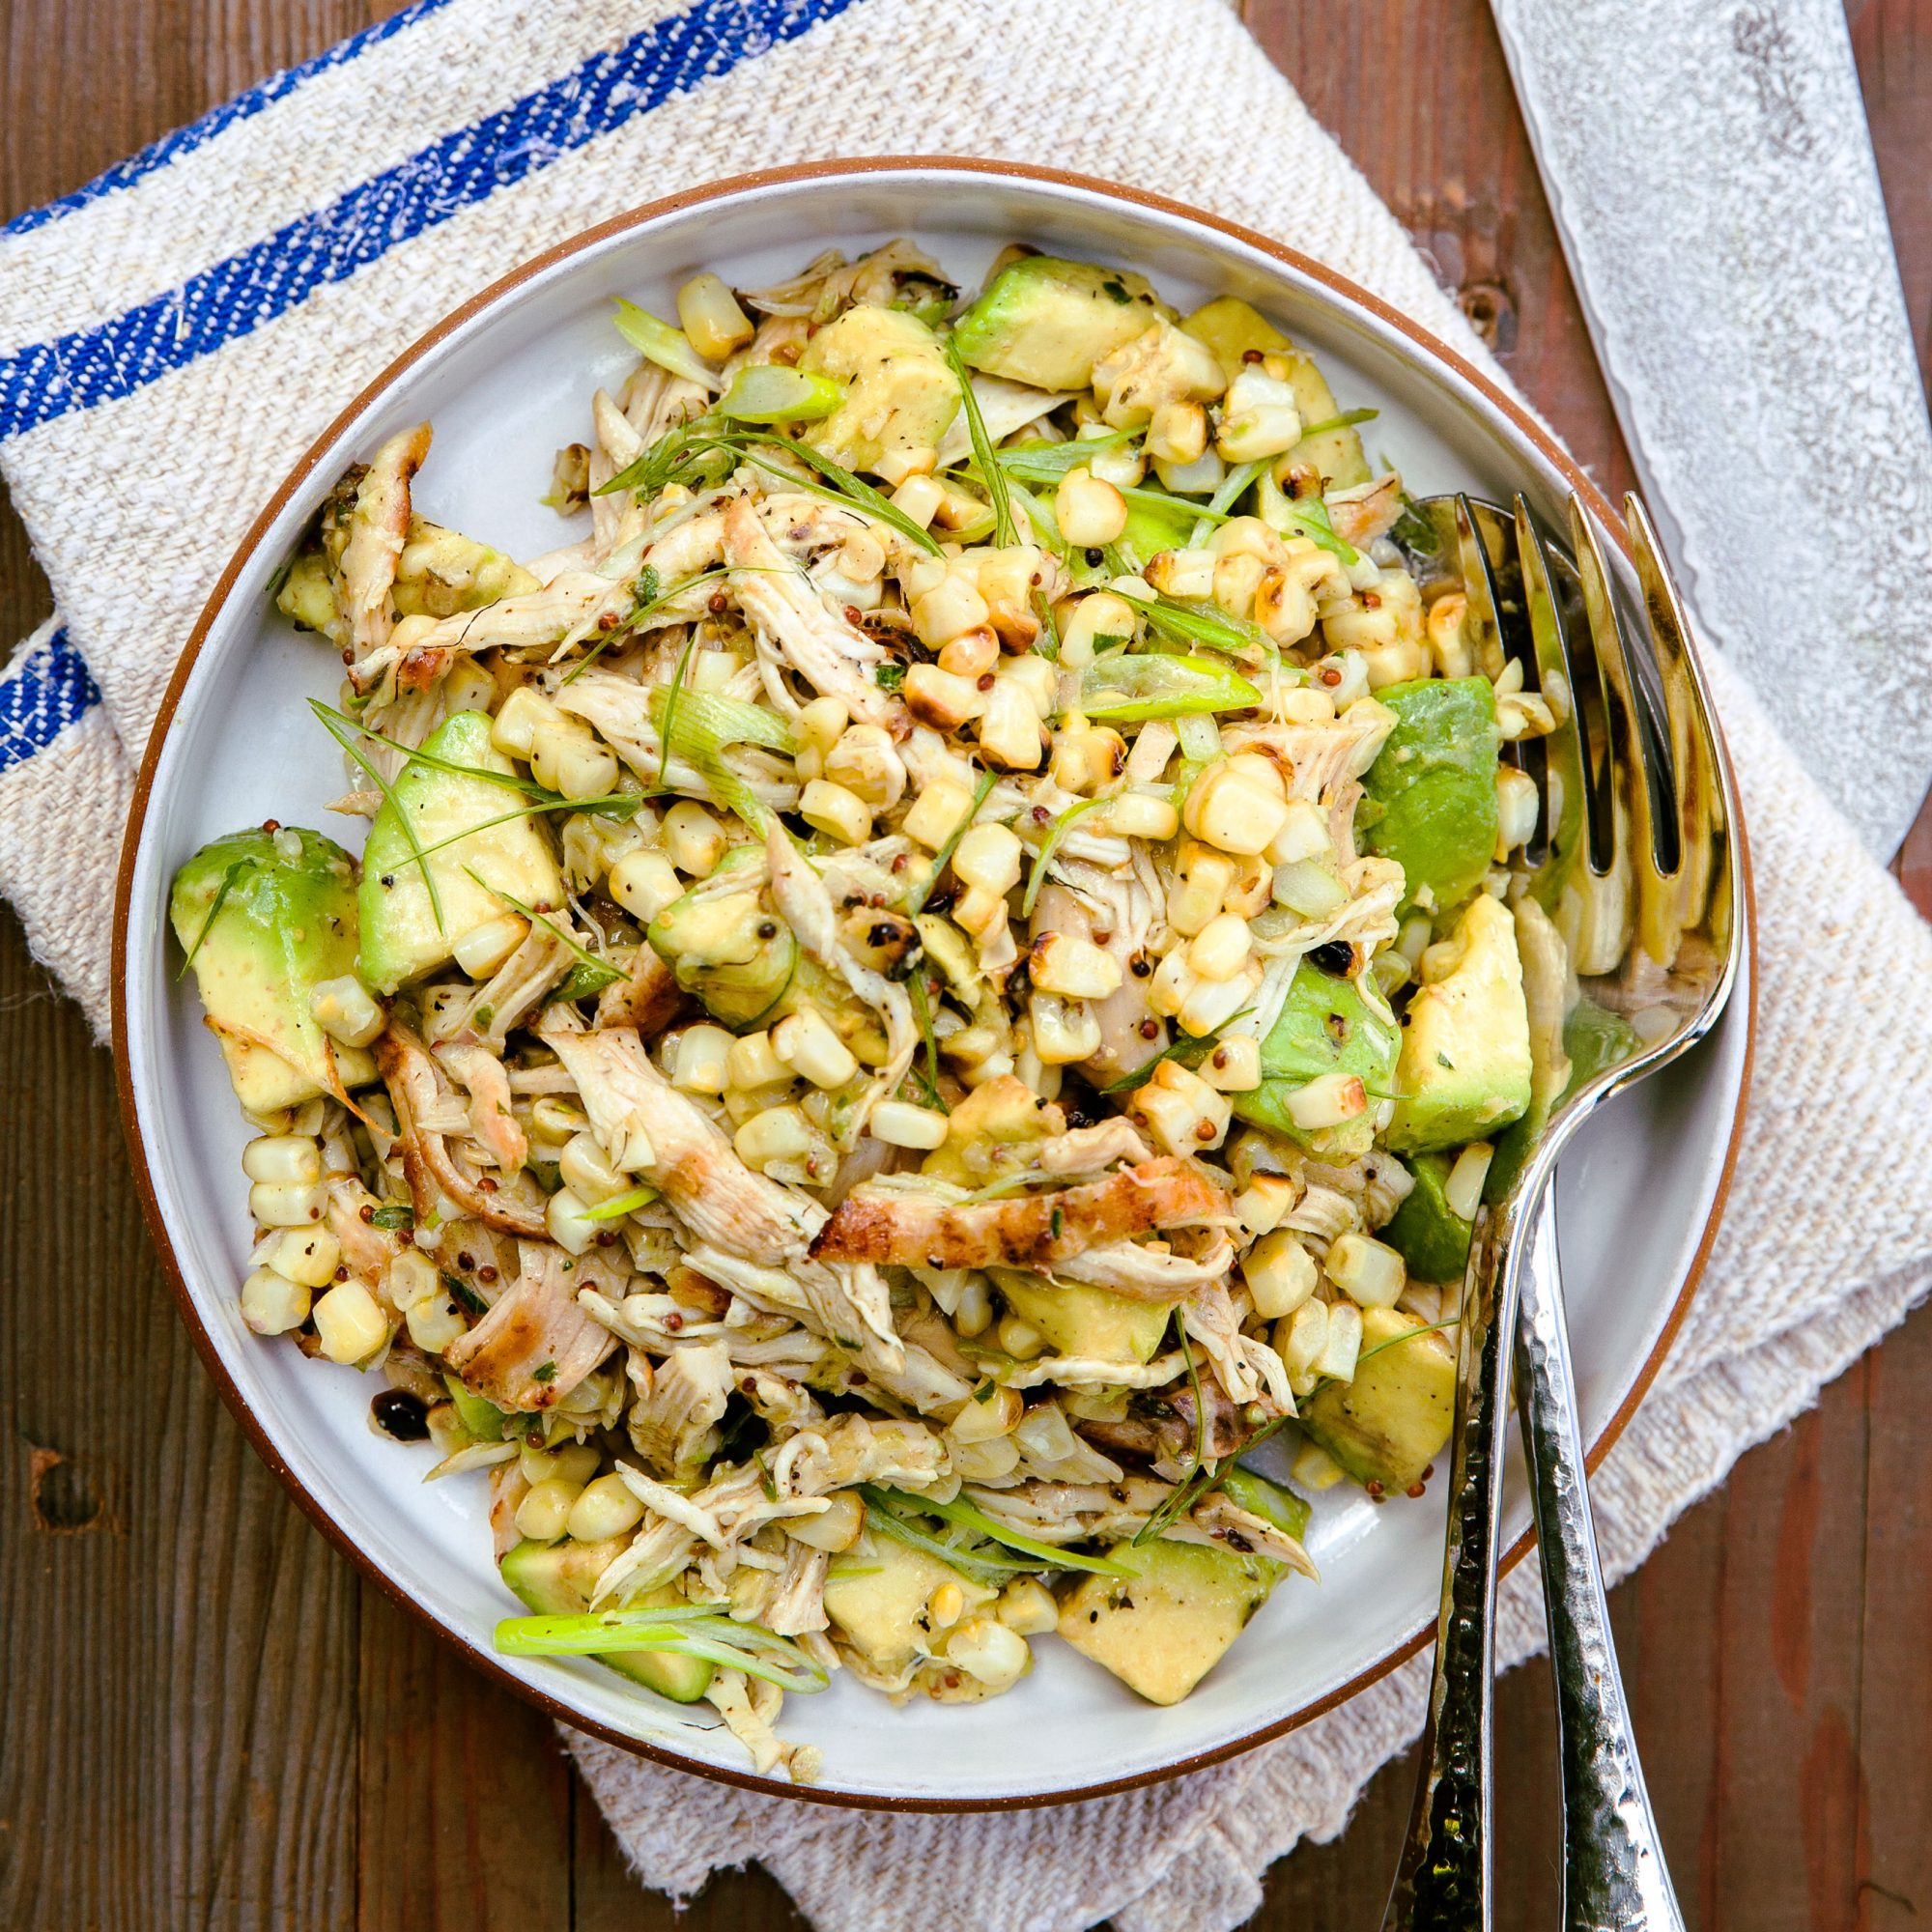 Chicken Salad with Miso Dressing